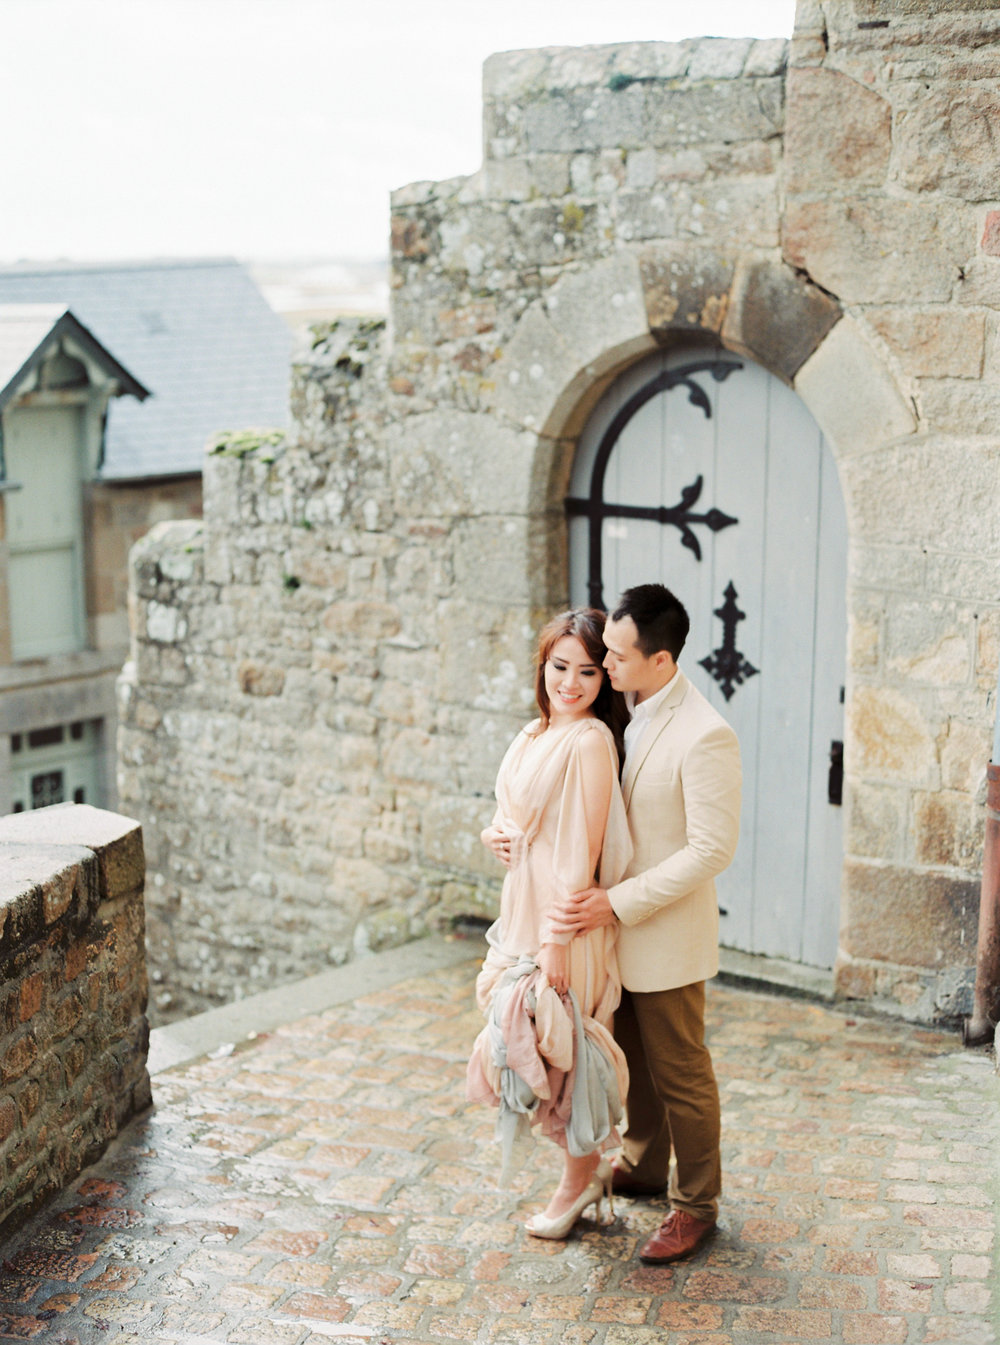 Destination engagement _ engagement in france _ mont saint-michel _ engagement photographer _ france wedding photographer _ 07.jpg